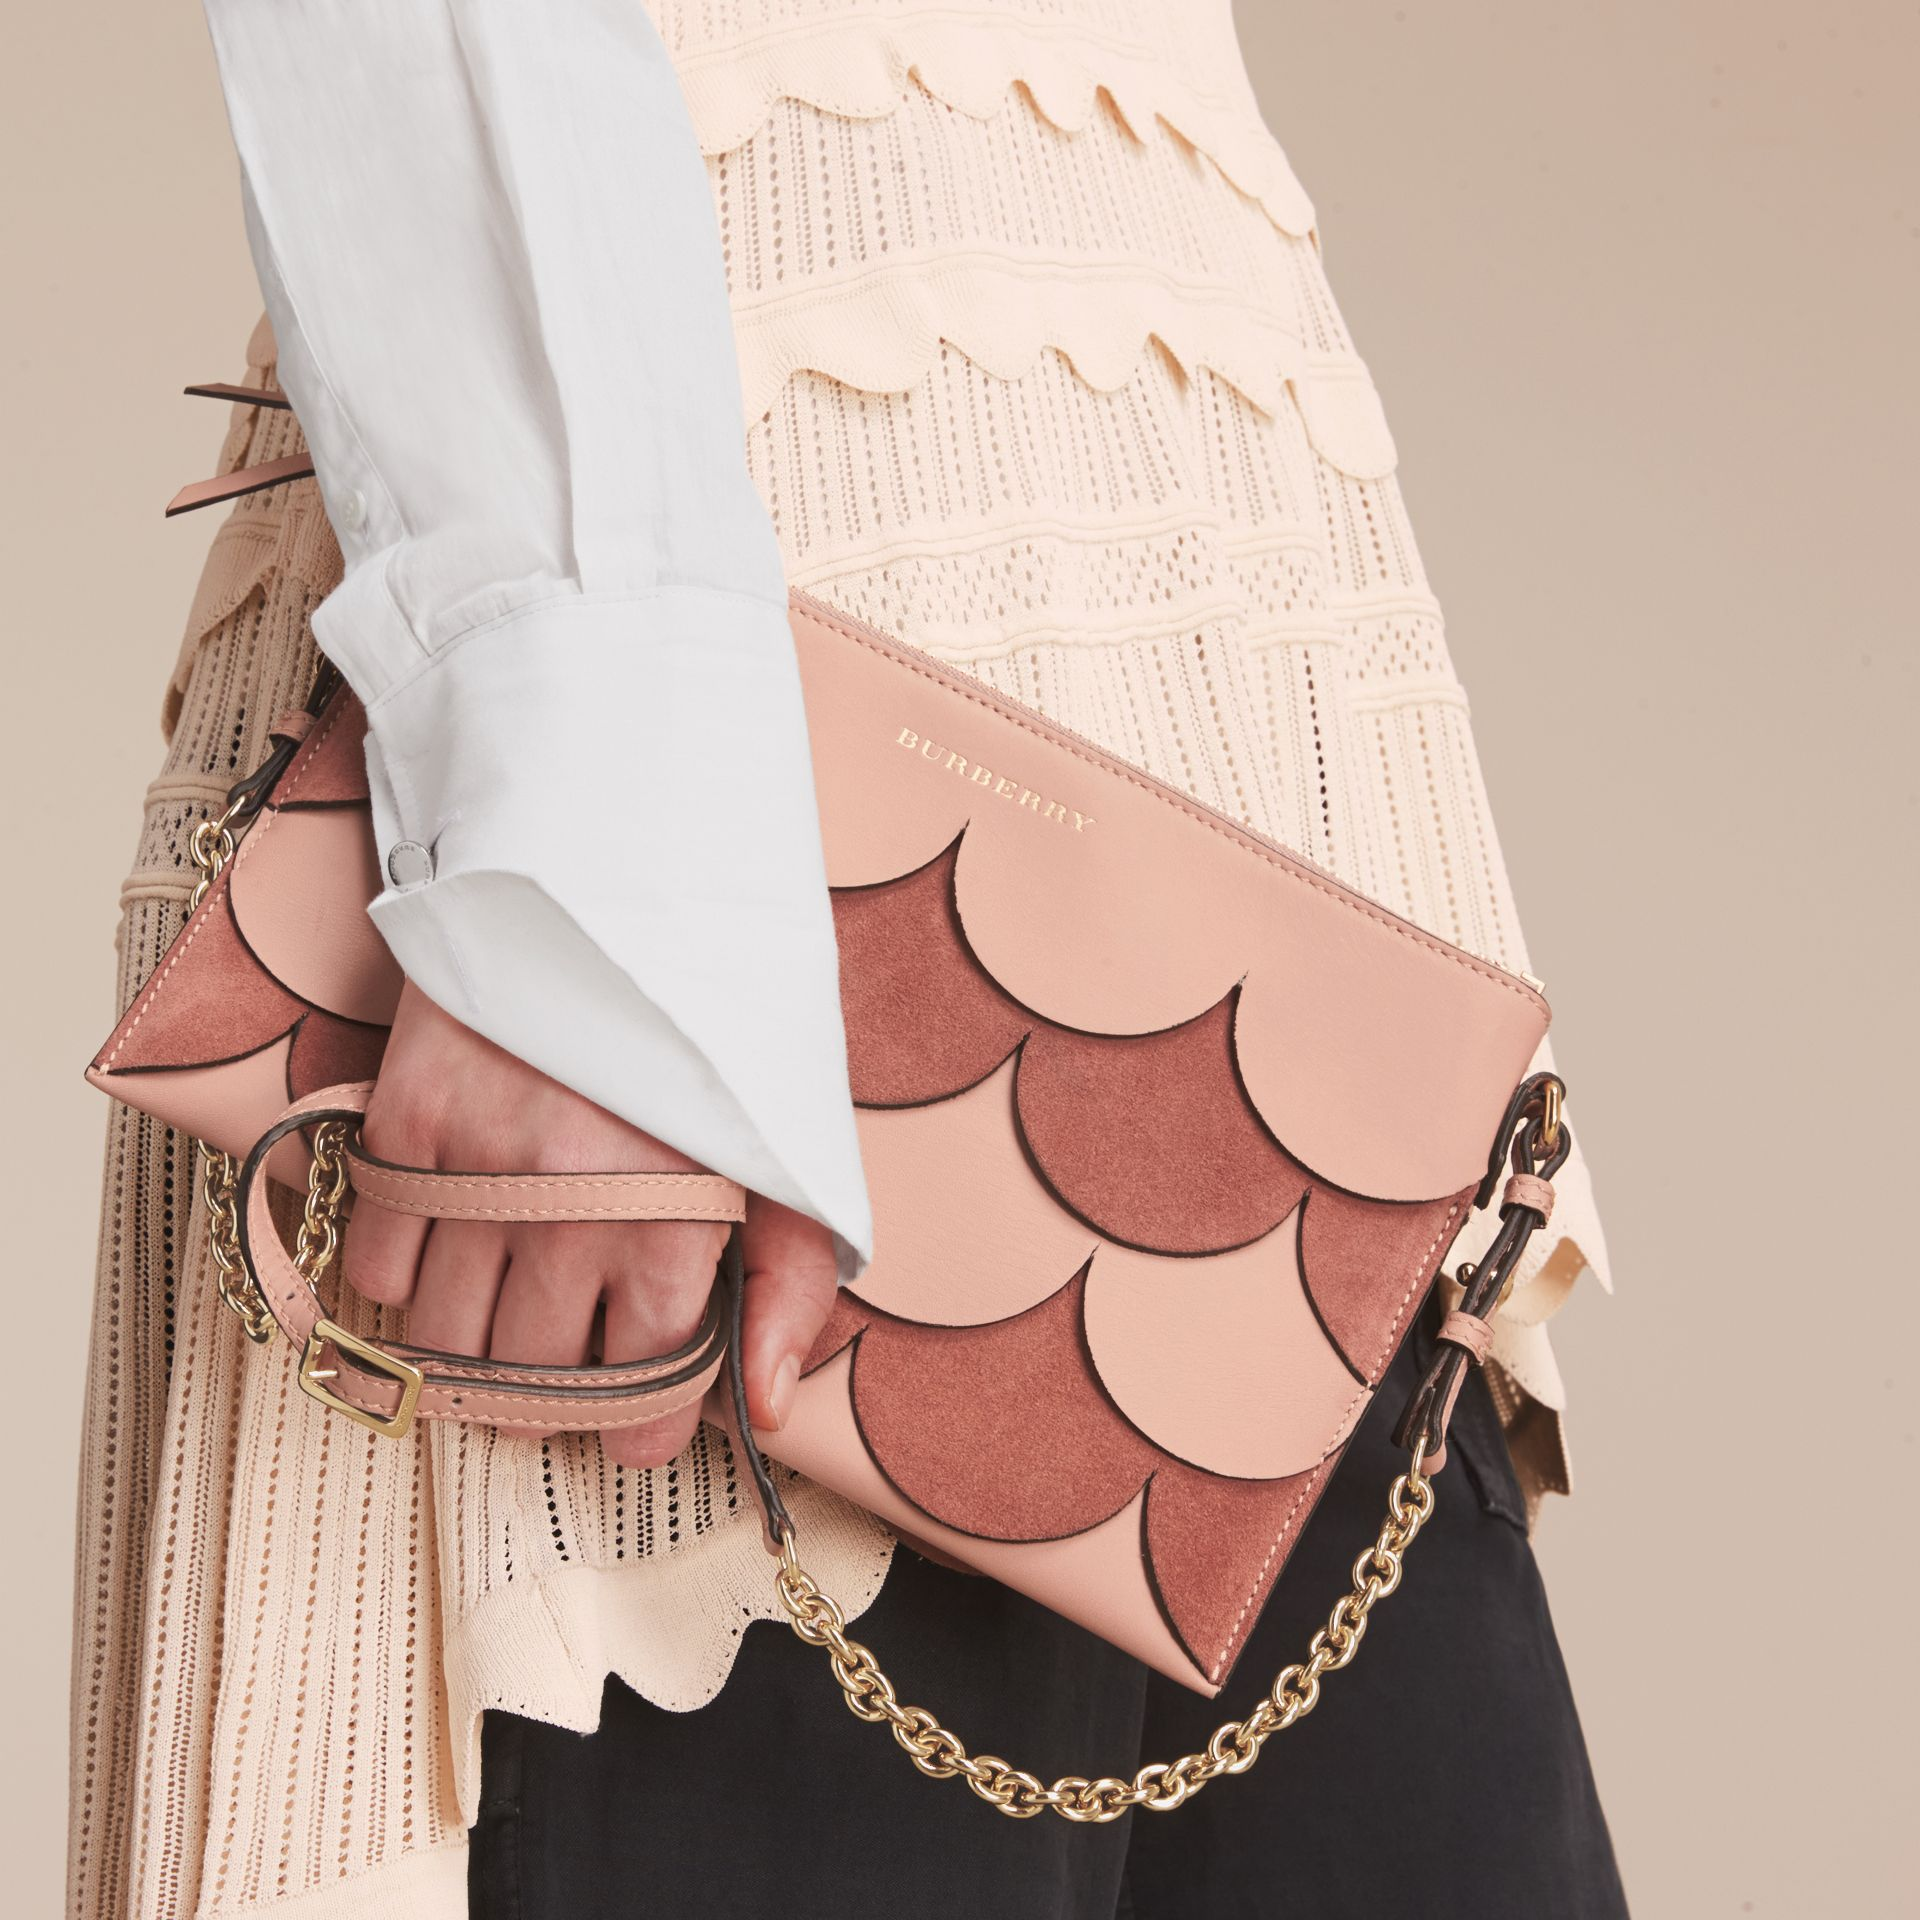 Two-tone Scalloped Leather and Suede Clutch Bag in Ash Rose - Women | Burberry - gallery image 2